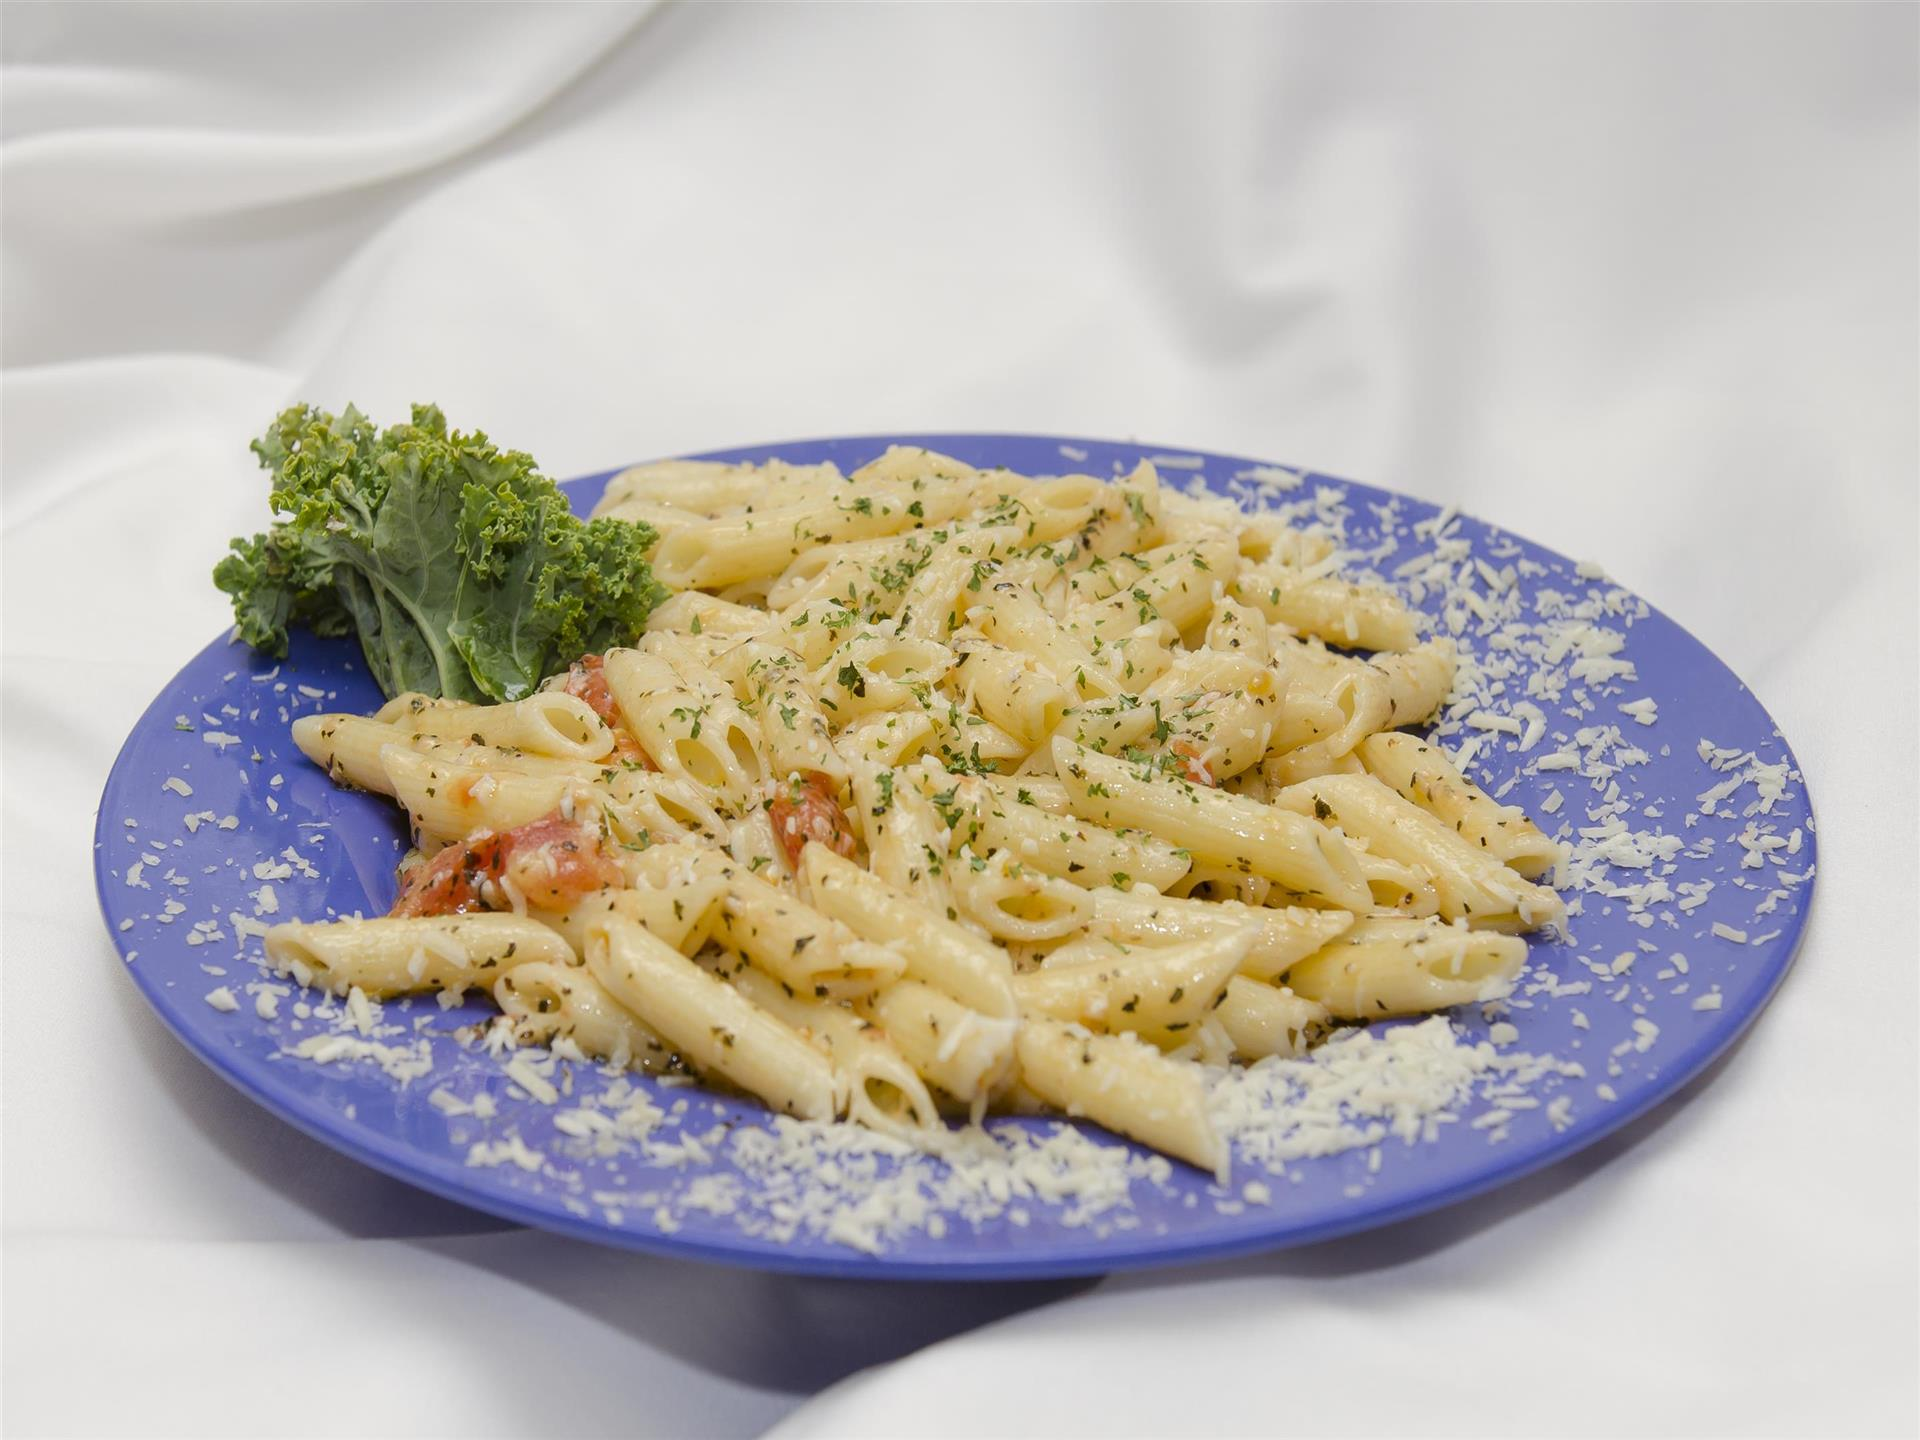 Penne Pasta with Parmesan Cheese